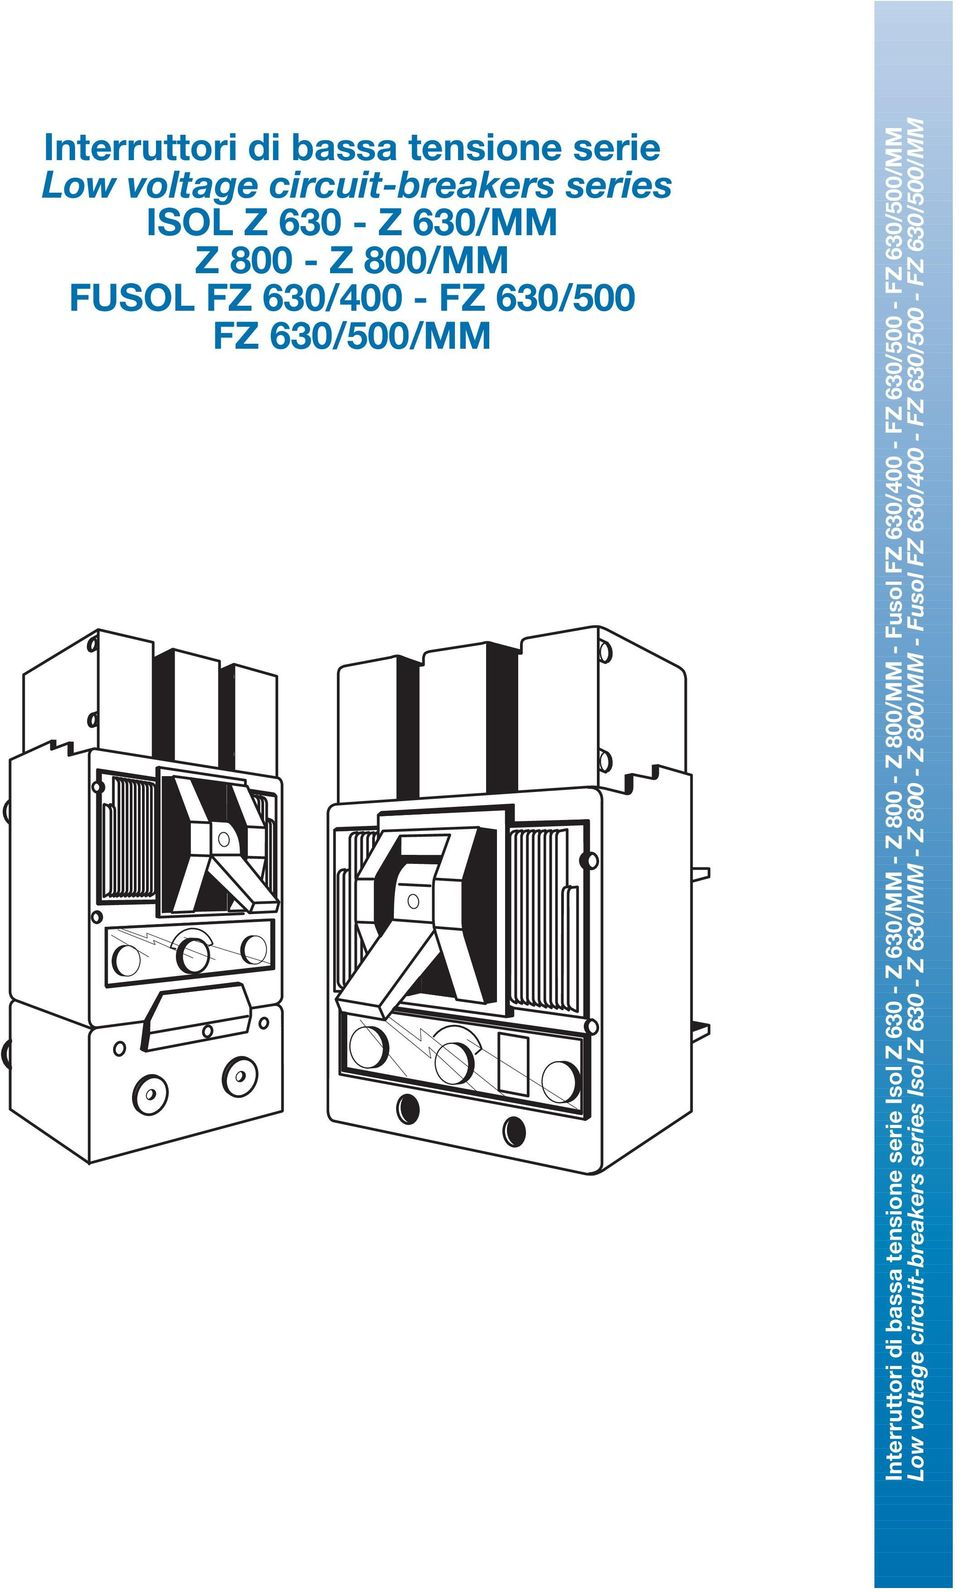 630 - Z 630/MM - Z 800 - Z 800/MM - Fusol FZ 630/400 - FZ 630/500 - FZ 630/500/MM Low voltage